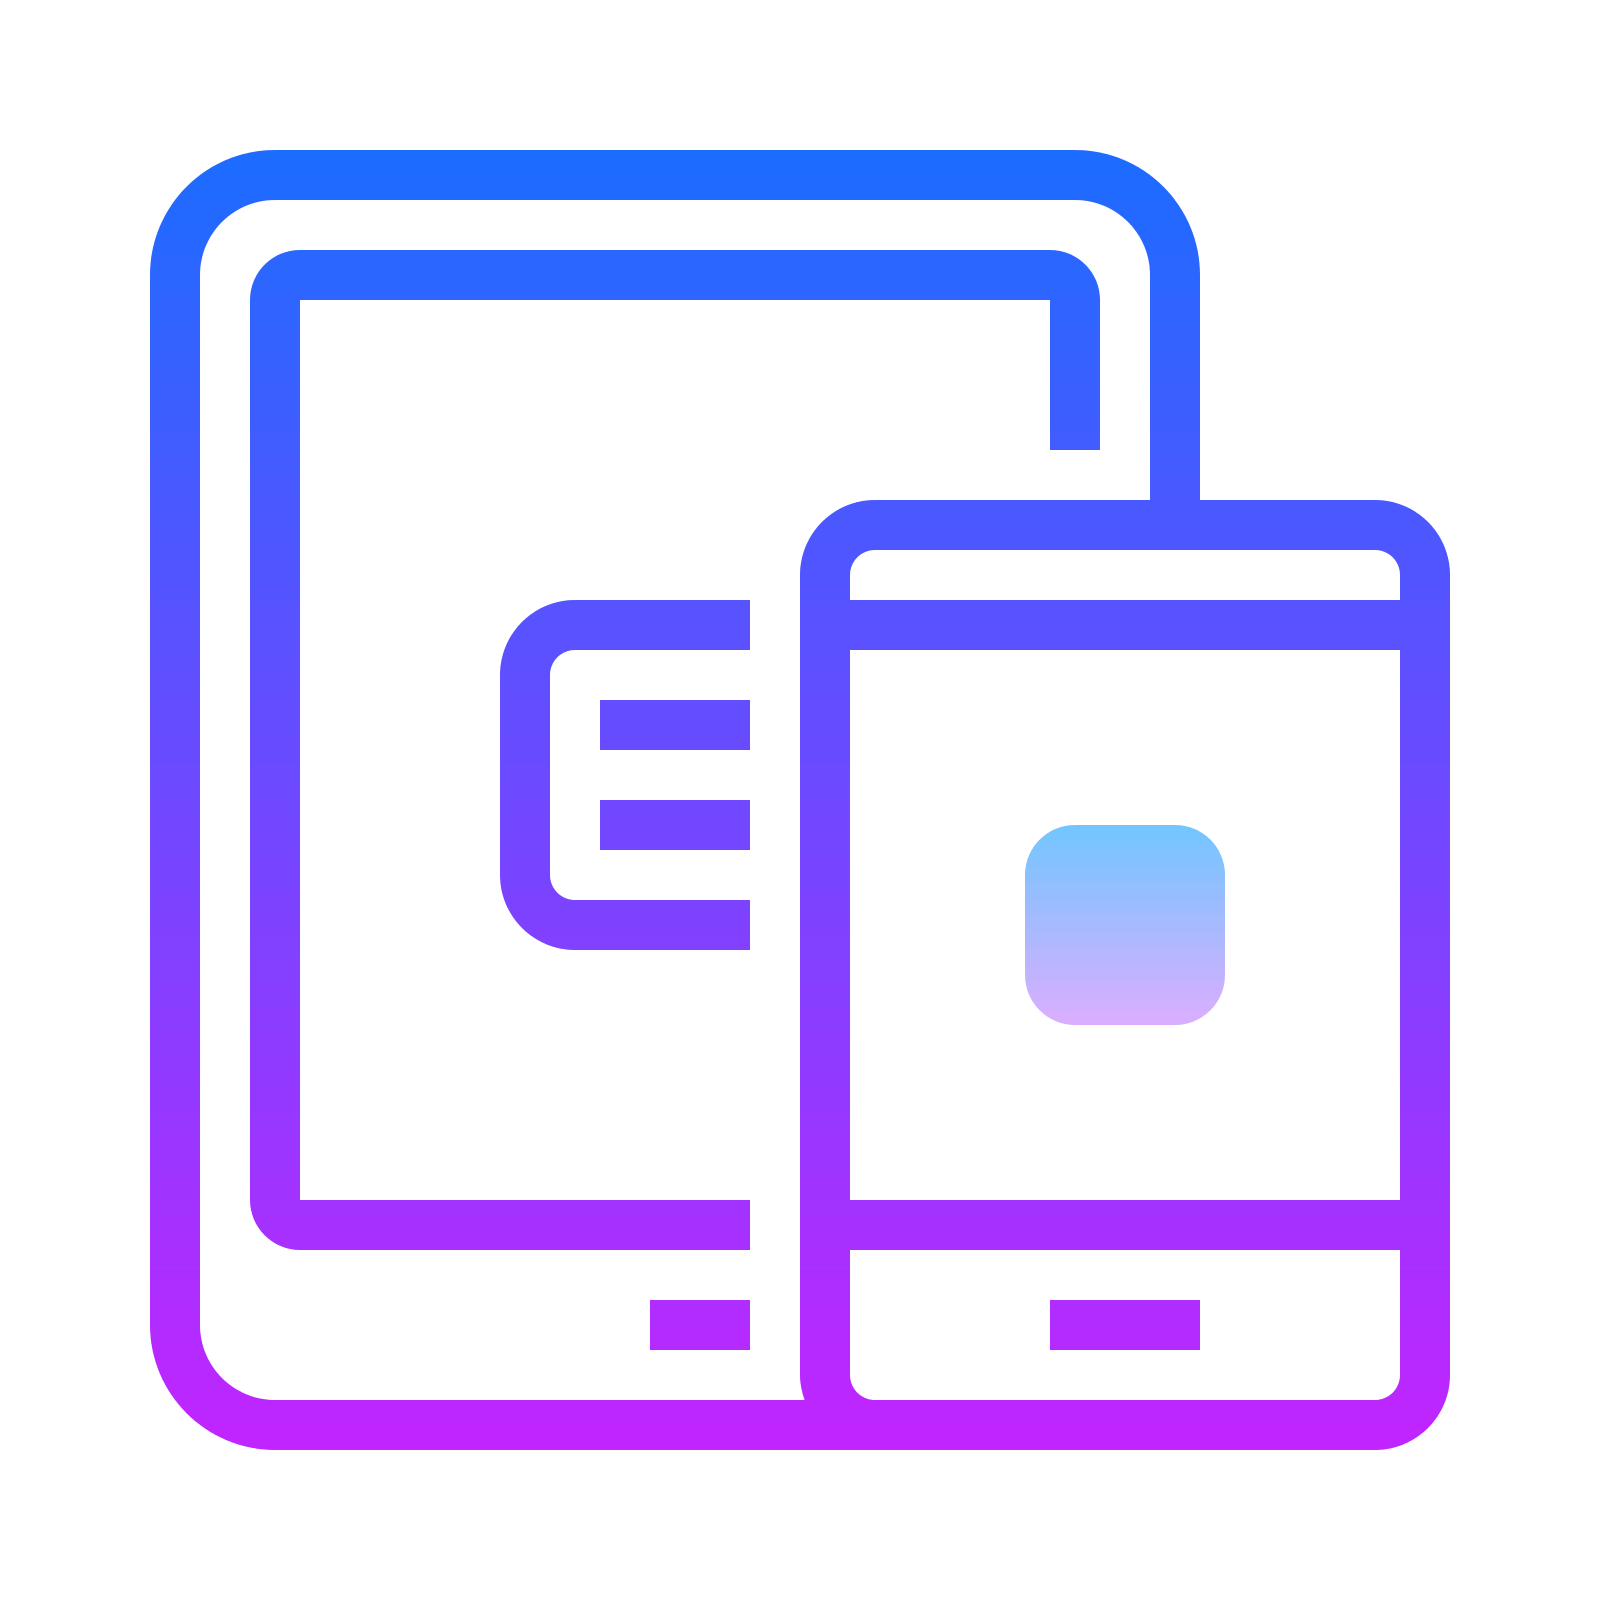 Needless clipart icon Icon and Touchscreen Touchscreen SVG